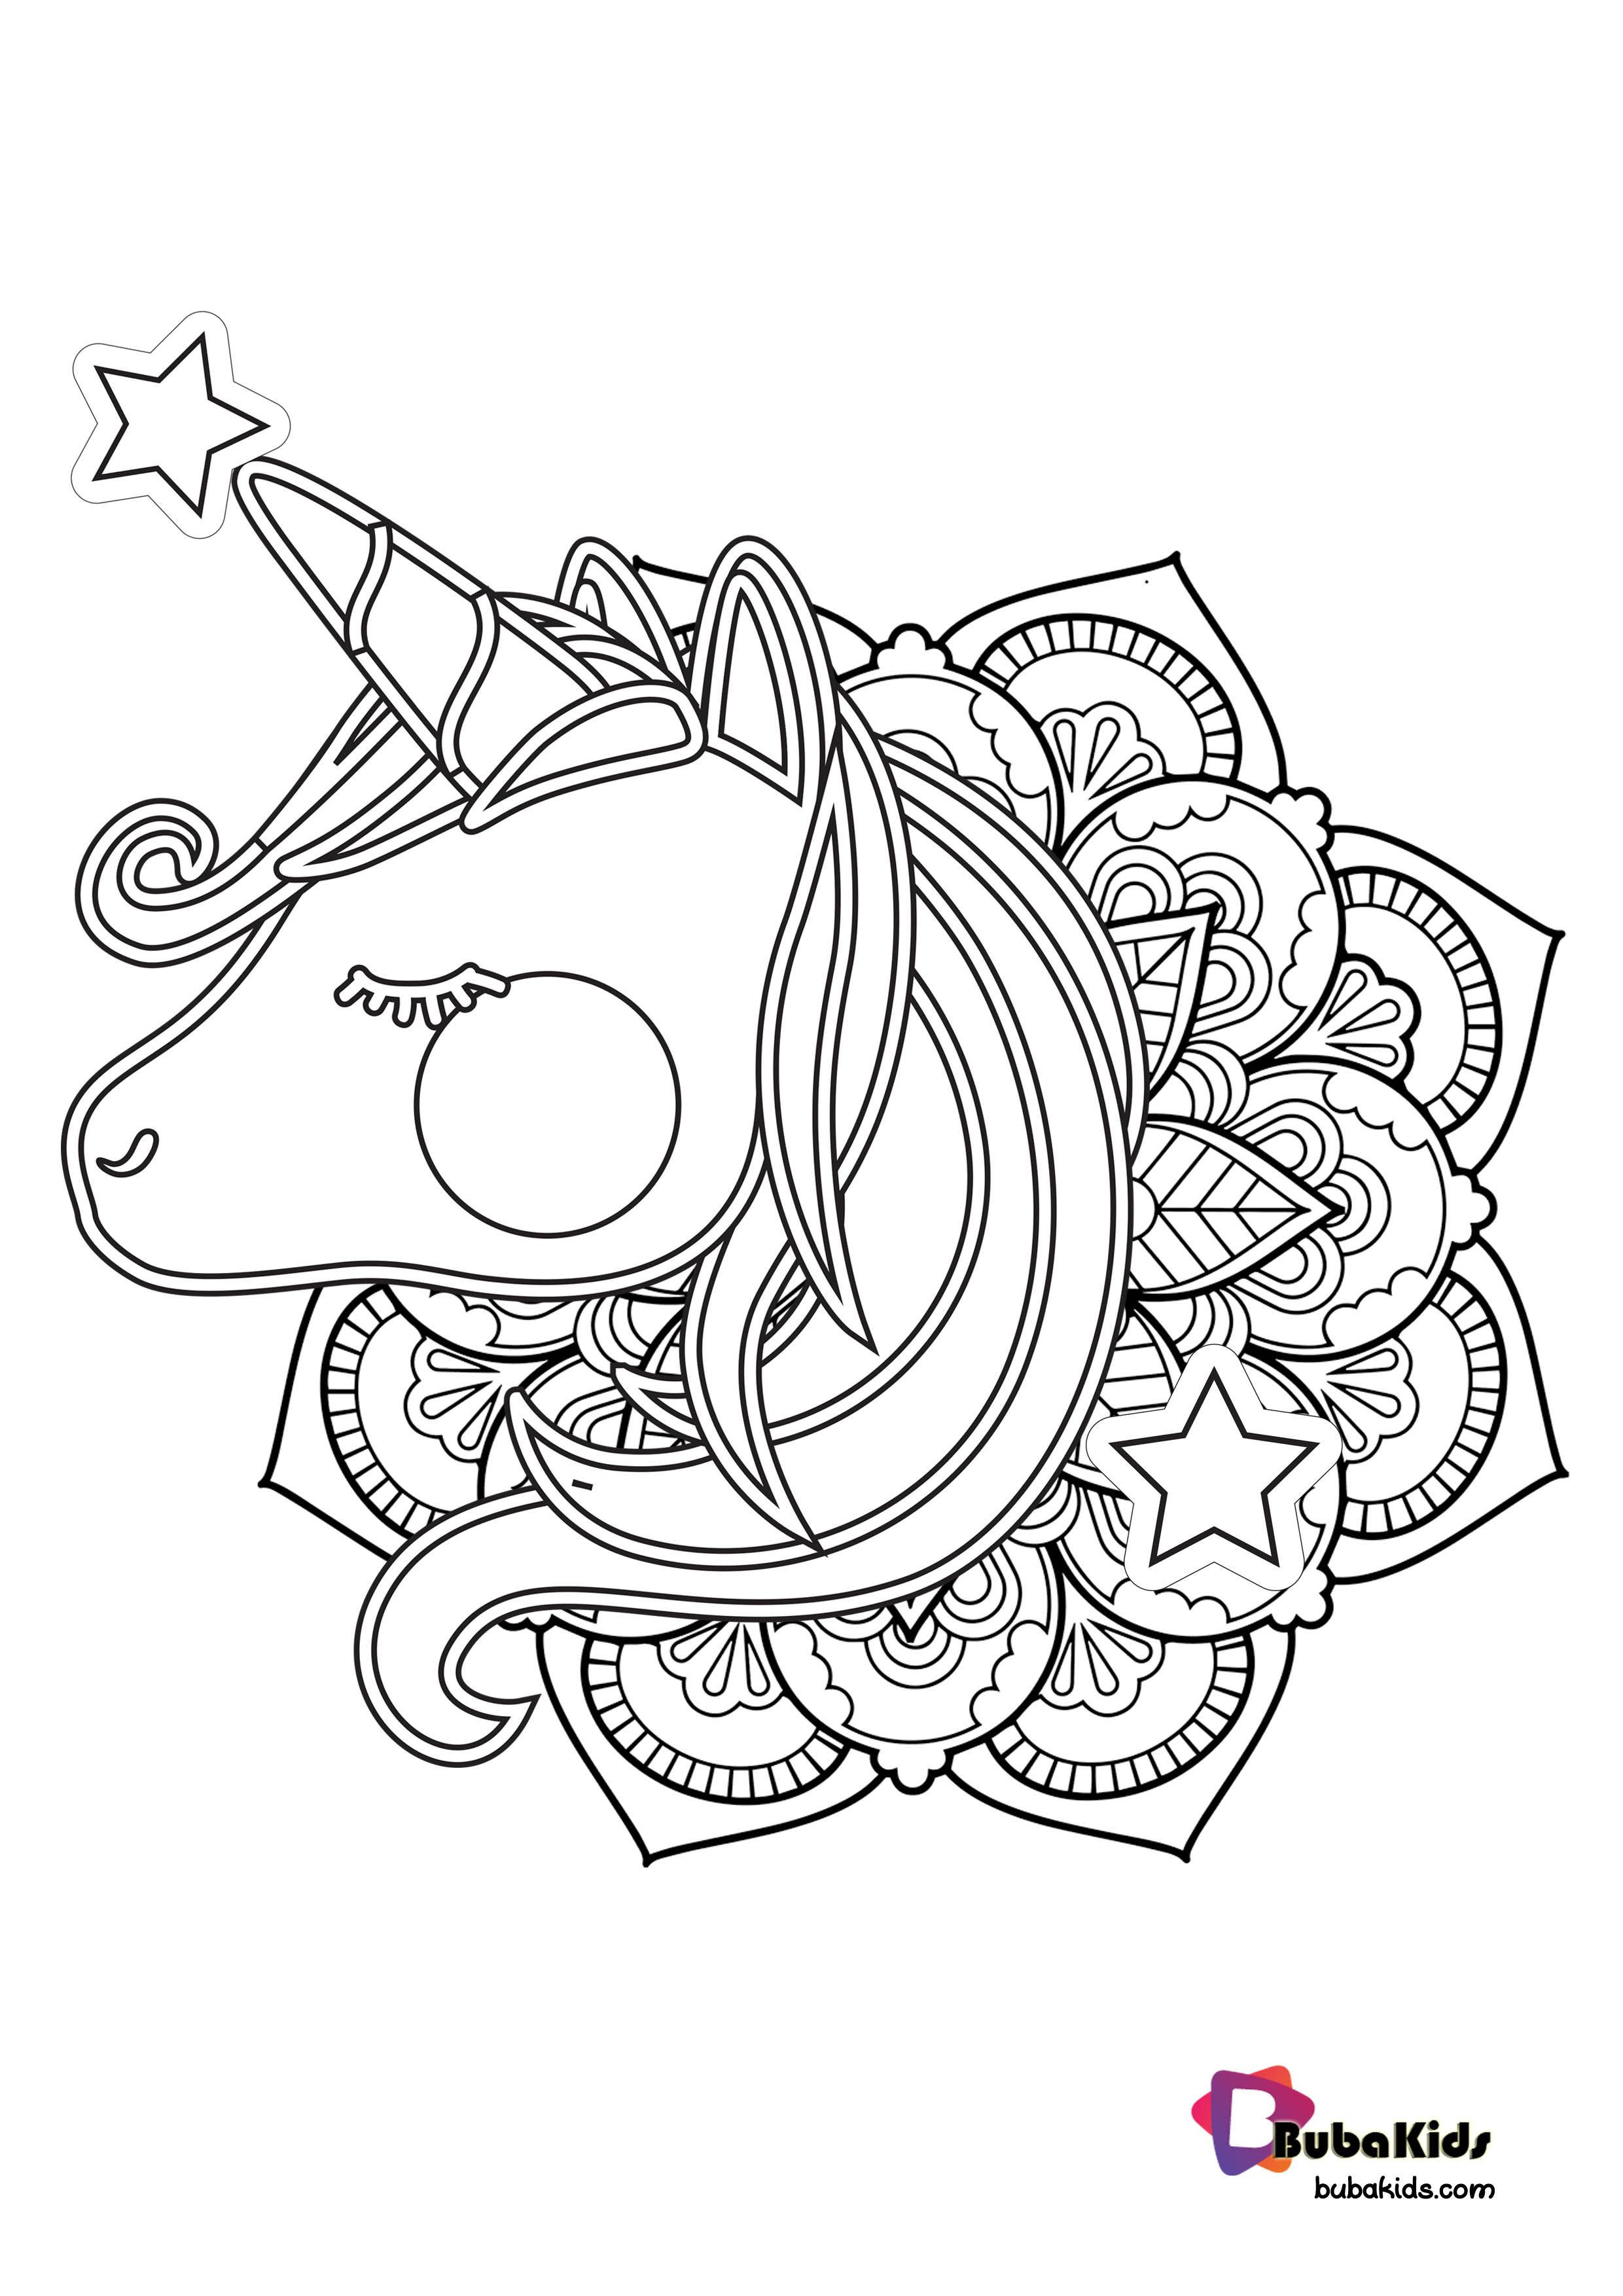 Hello Kids Let S Coloring Cute Unicorn Mandala Only In Bubakids Creative Kids Colorin Mandala Coloring Pages Cartoon Coloring Pages Stitch Coloring Pages